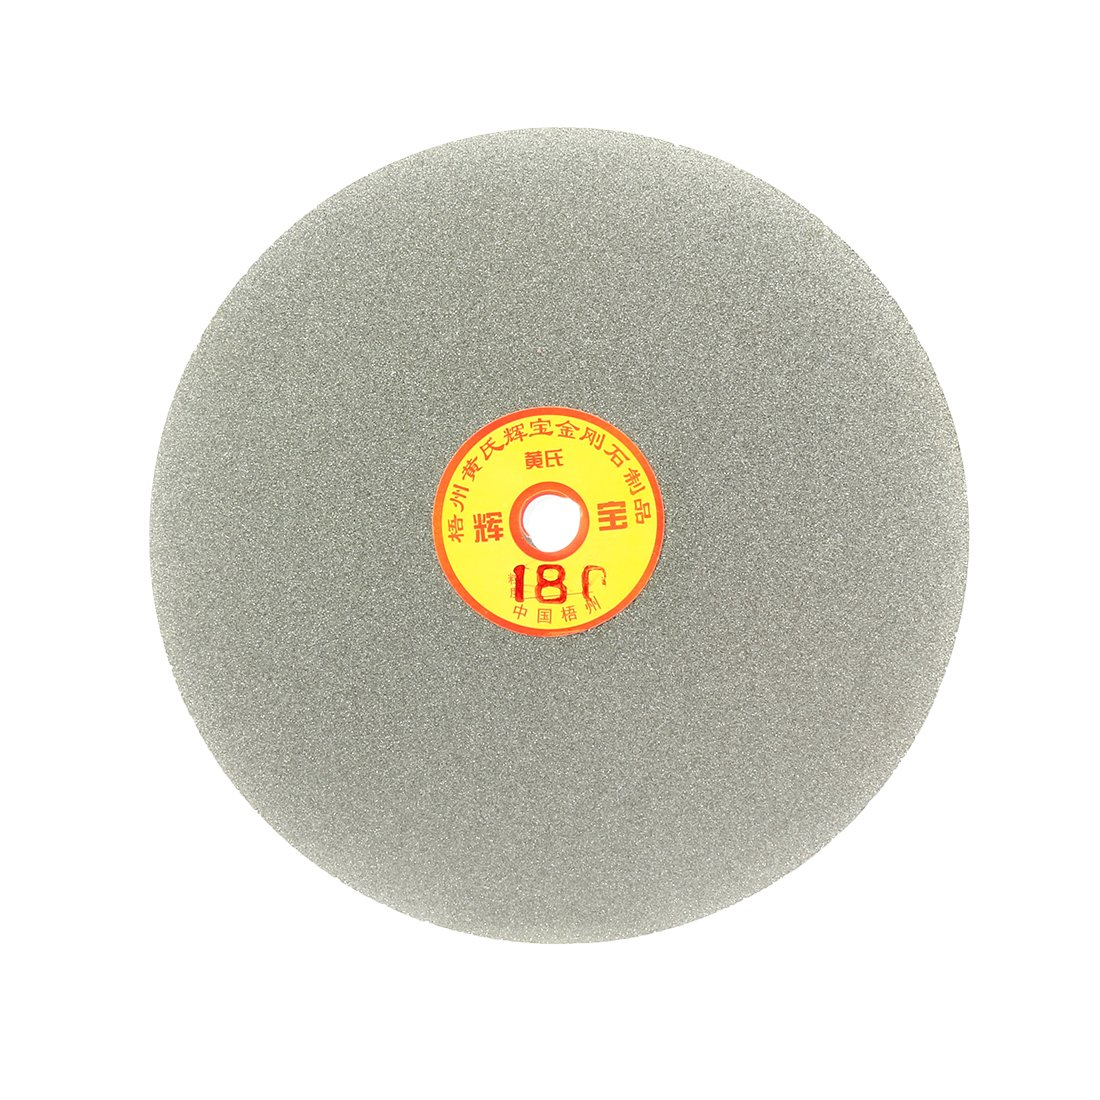 uxcell 180mm 7-inch Grit 180 Diamond Coated Flat Lap Disk Wheel Grinding Sanding Disc